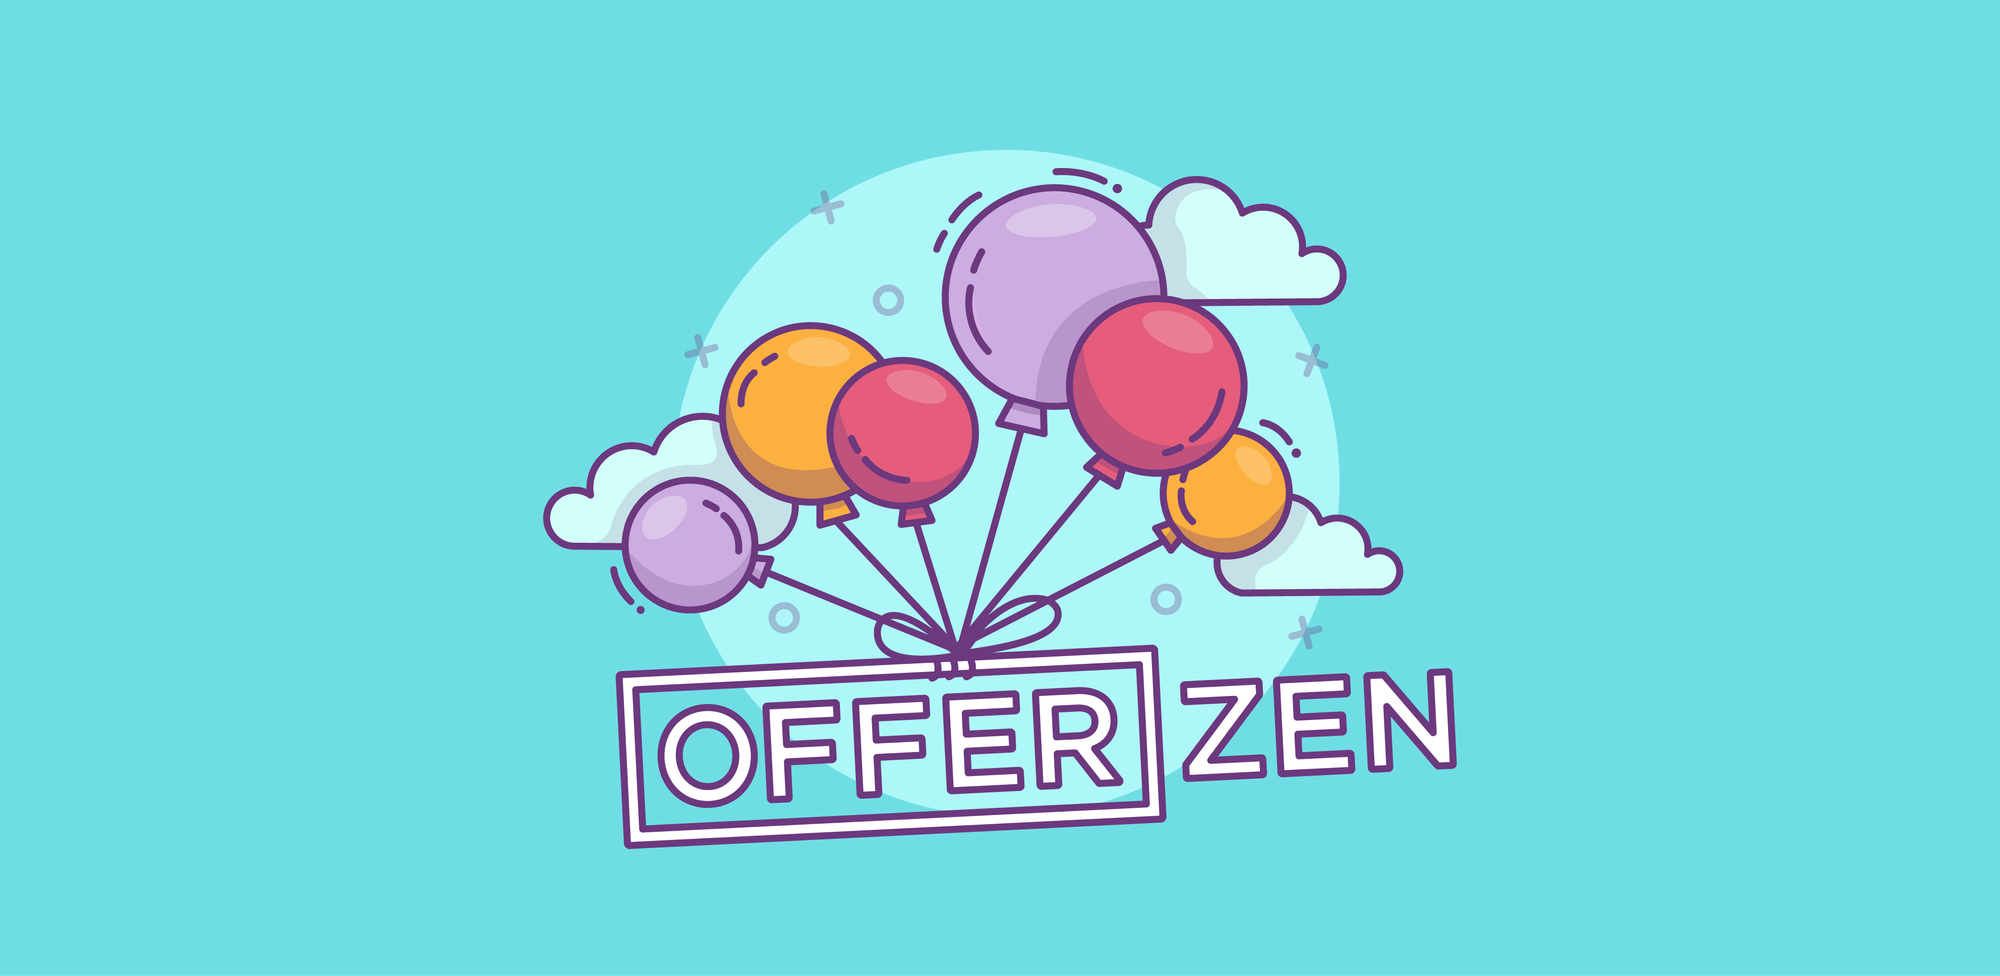 Offerzen-Mission_Balloons_Unlocking-Human-Potential_Inner-article-image-02-1